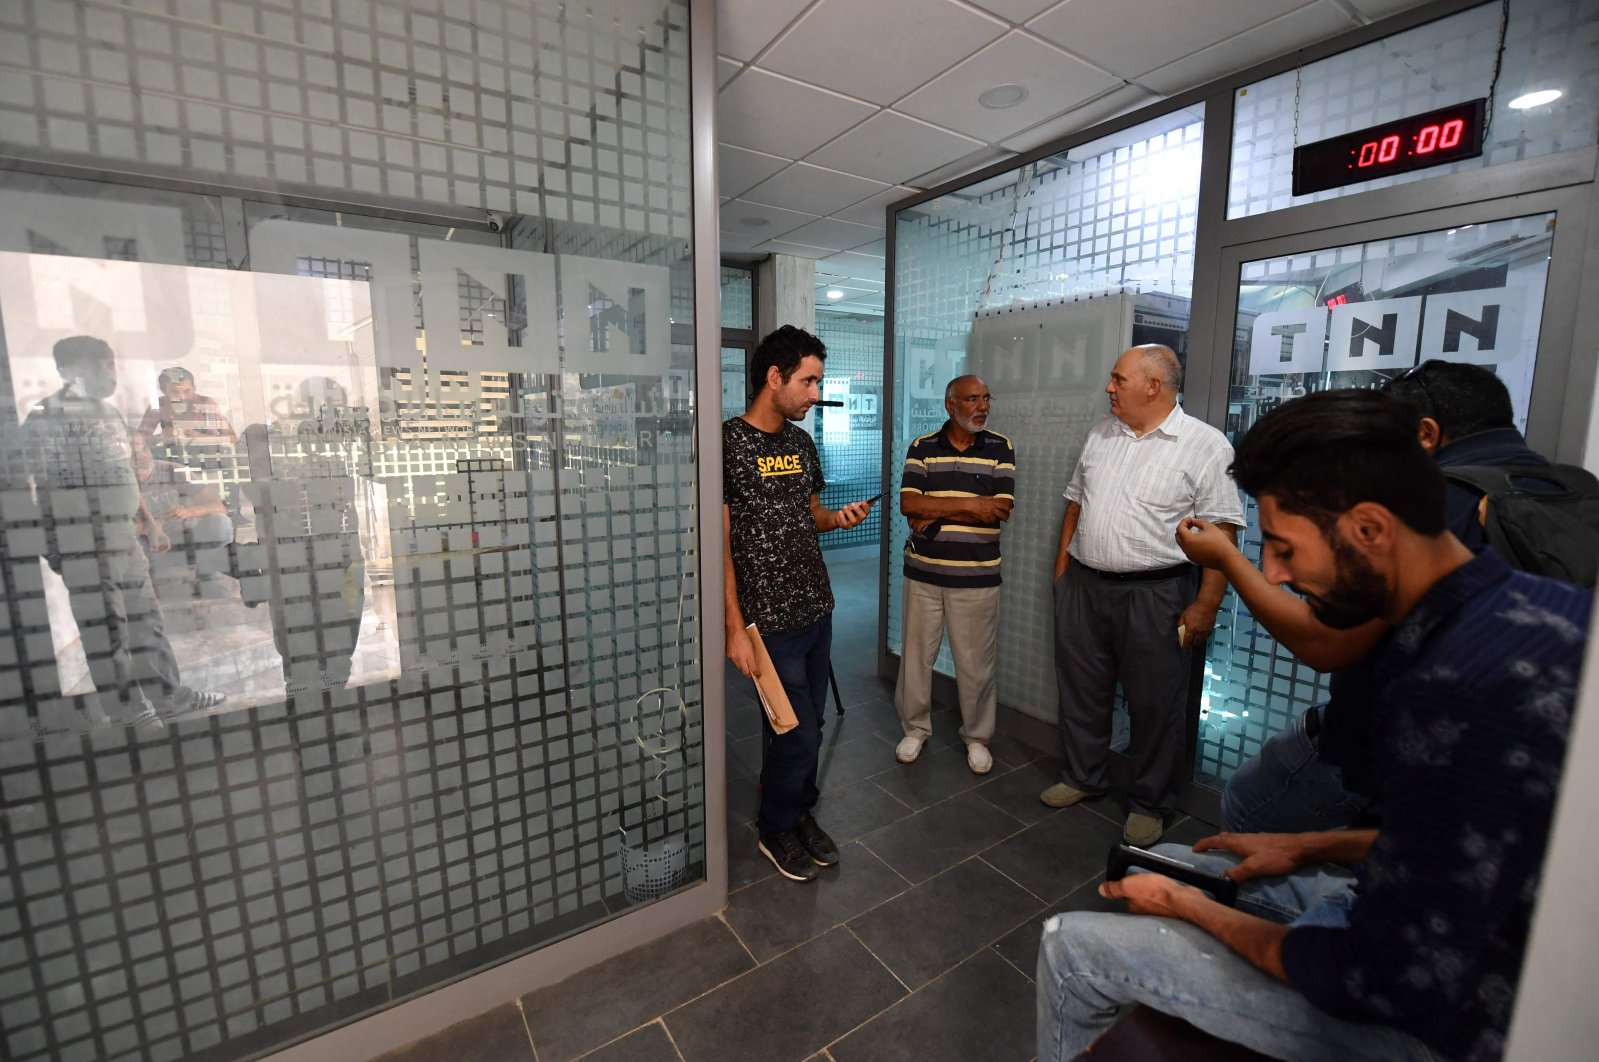 Employees gather inside the building housing the Zitouna TV channel gather on October 6, 2021, after Tunisian authorities seized broadcasting equipment, in the district of Mghira of greater Tunis, the country's capital. (AFP Photo)